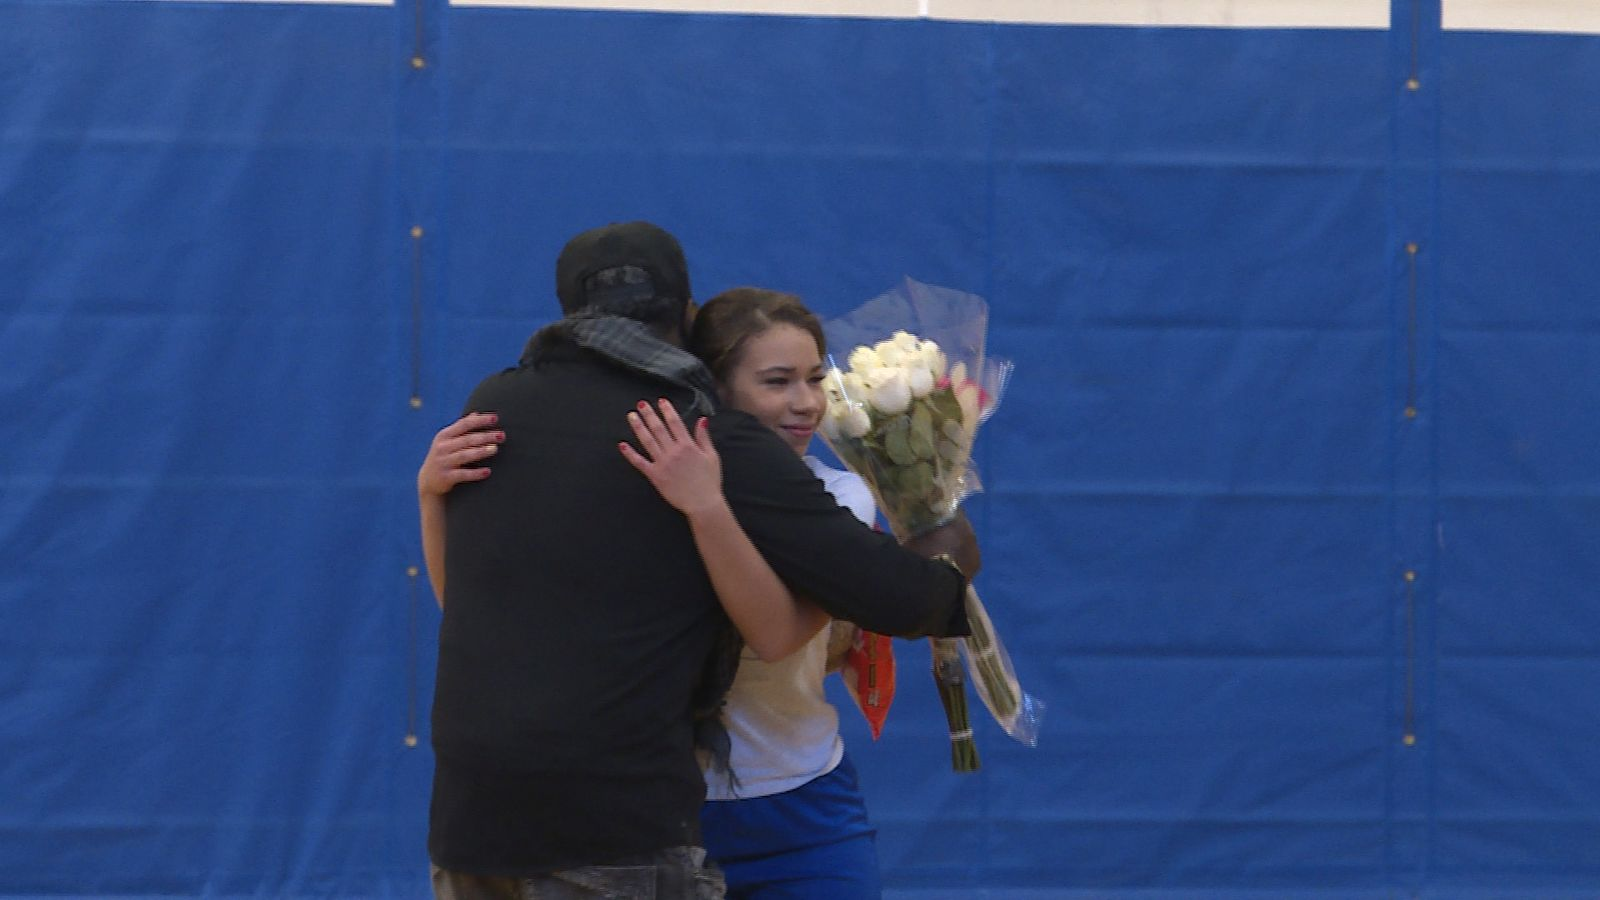 Nevaeh and Rodney hugging at Grants Pass High School. (Carsyn Currier/News 10){ }